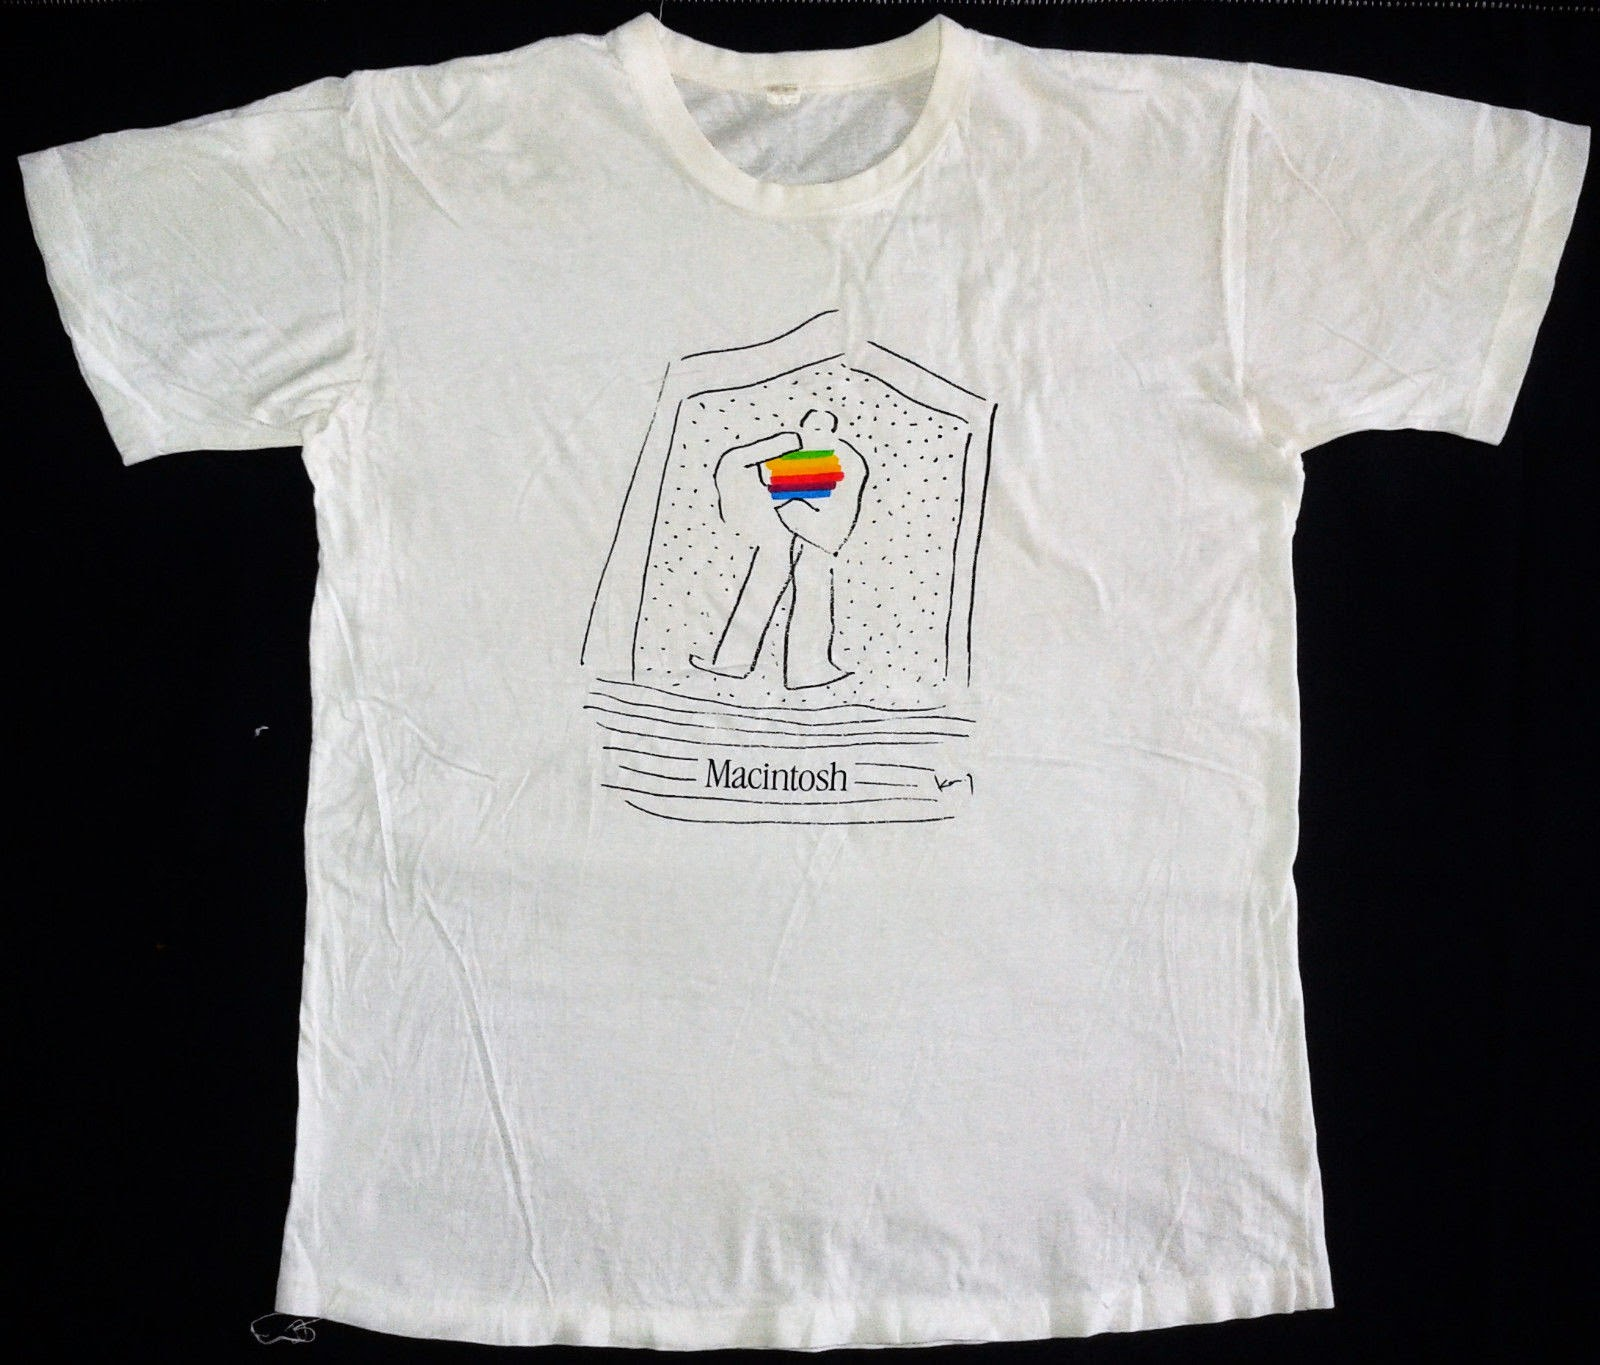 Design t shirt on mac - It Does Not Appear In The Apple T Shirts Book So I Have No Other Information About The Design